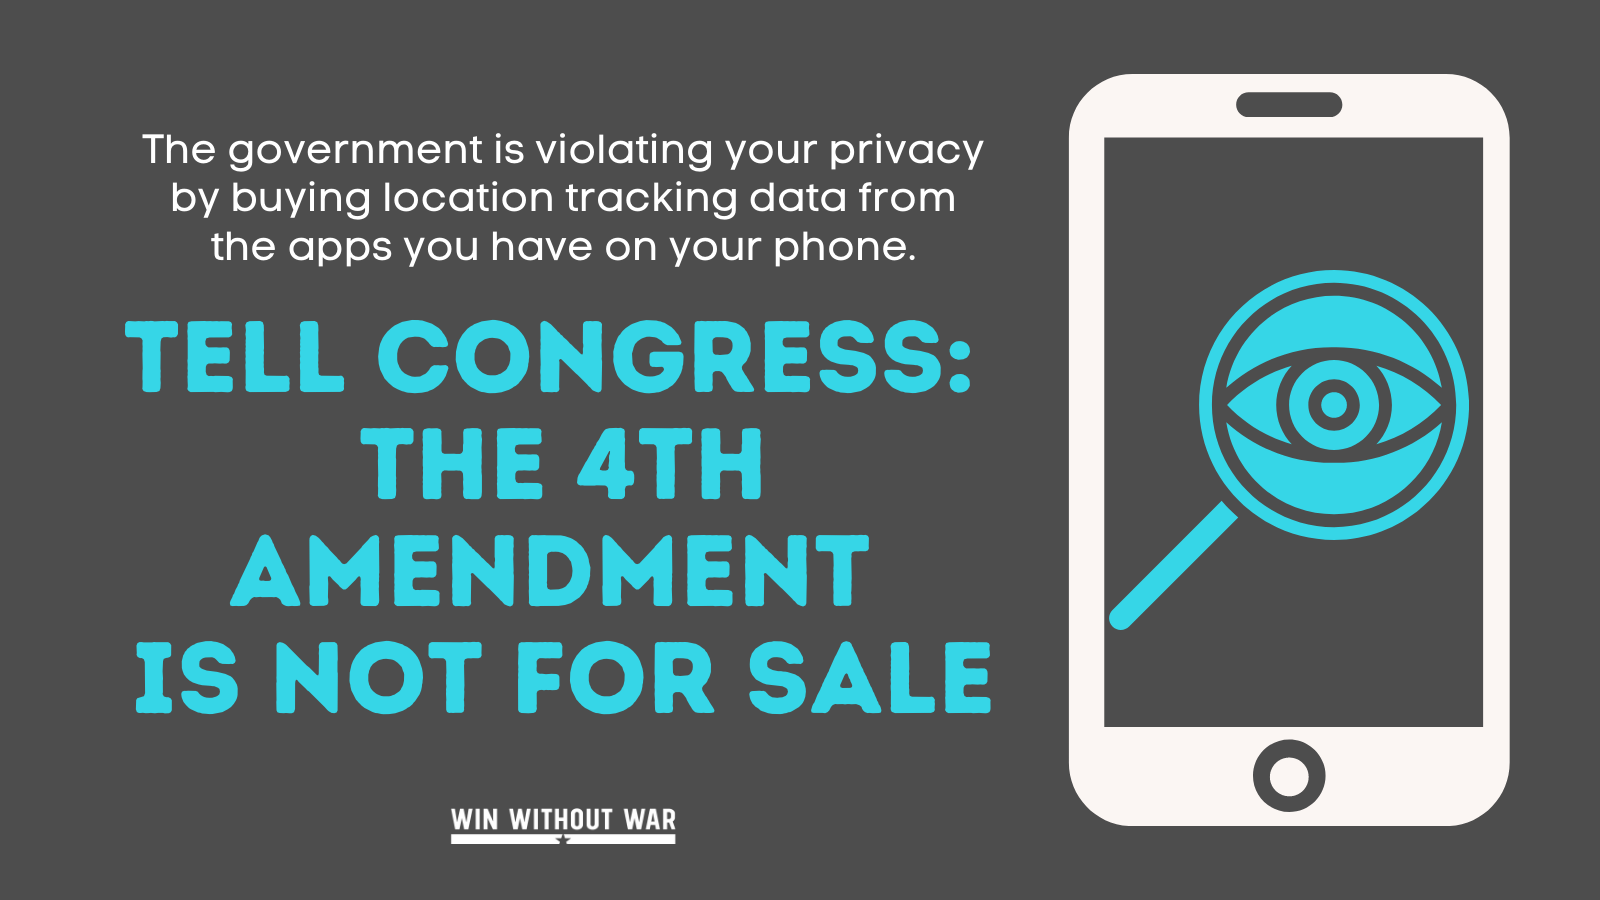 The 4th Amendment is not for sale!